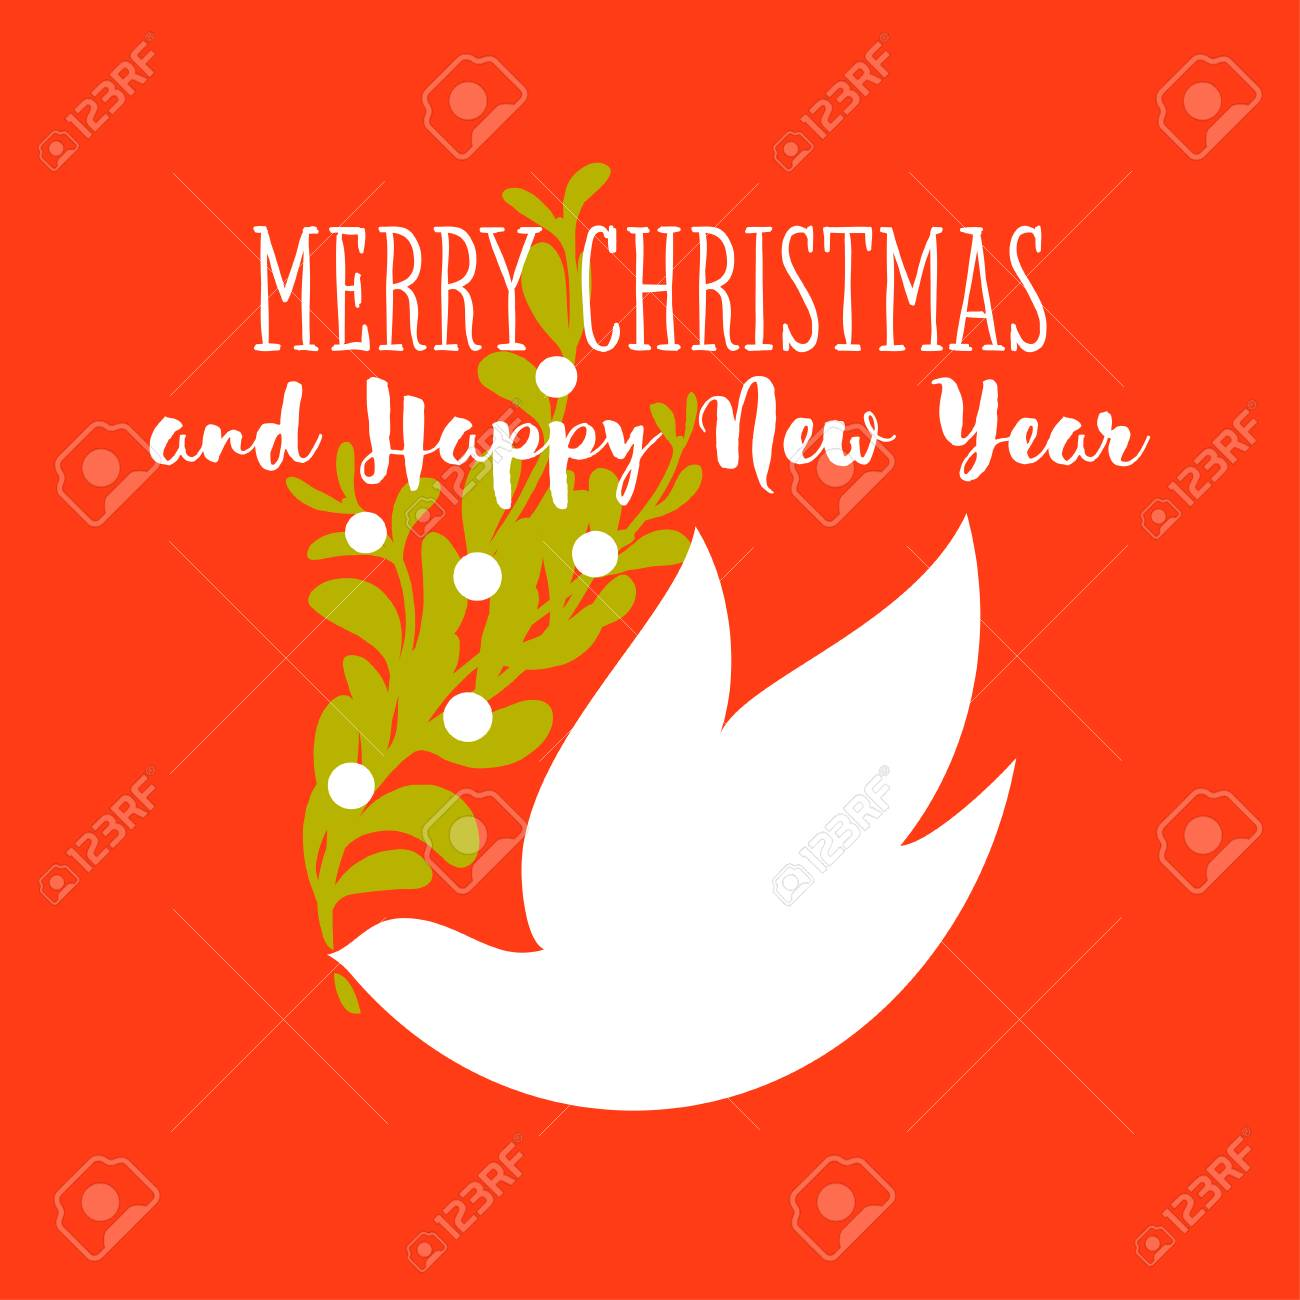 Christmas Card With Holiday Greetings And White Dove Holding